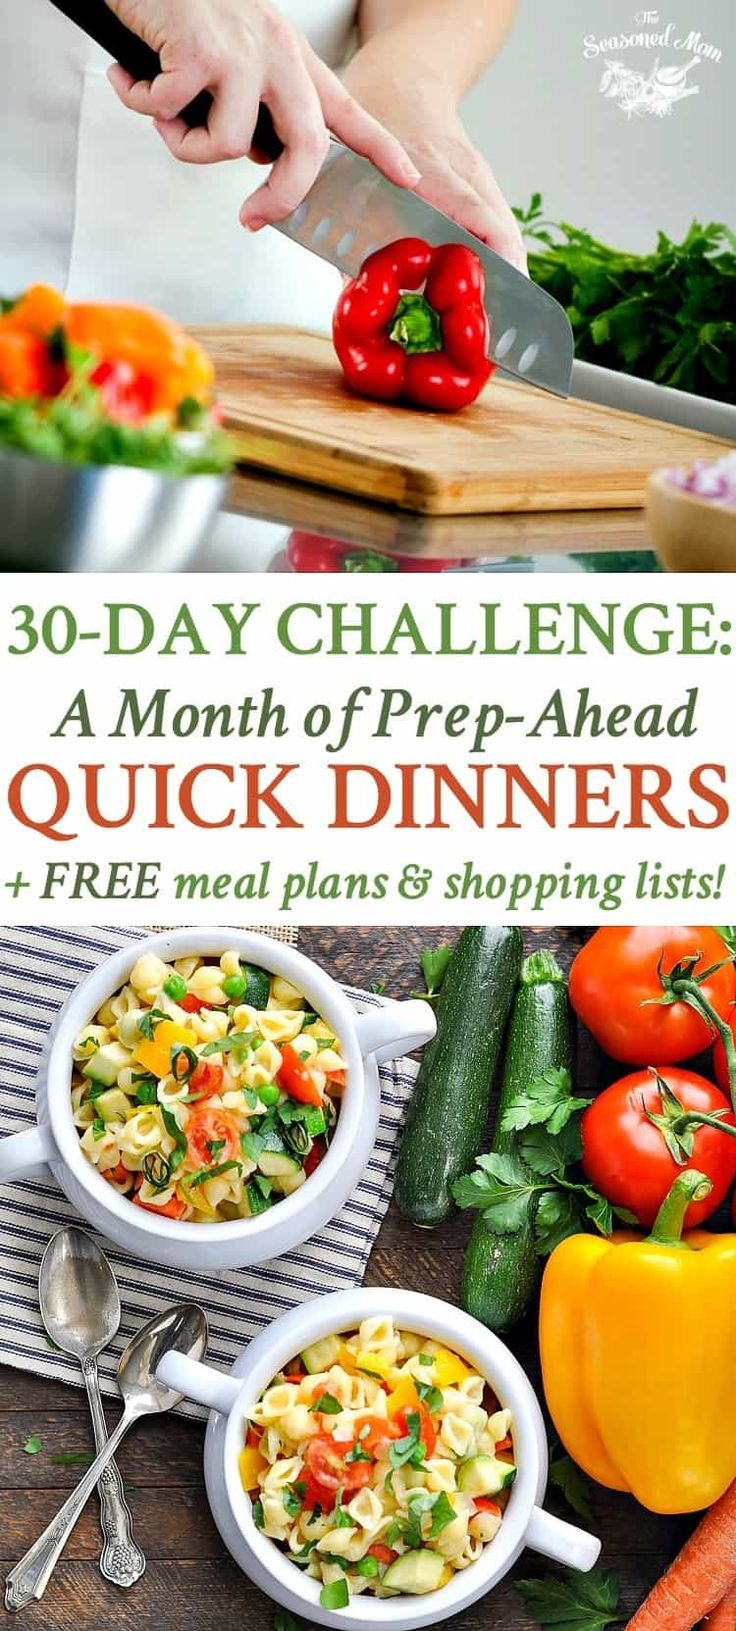 30-Day Challenge: A Month of Prep-Ahead Quick Dinners! images